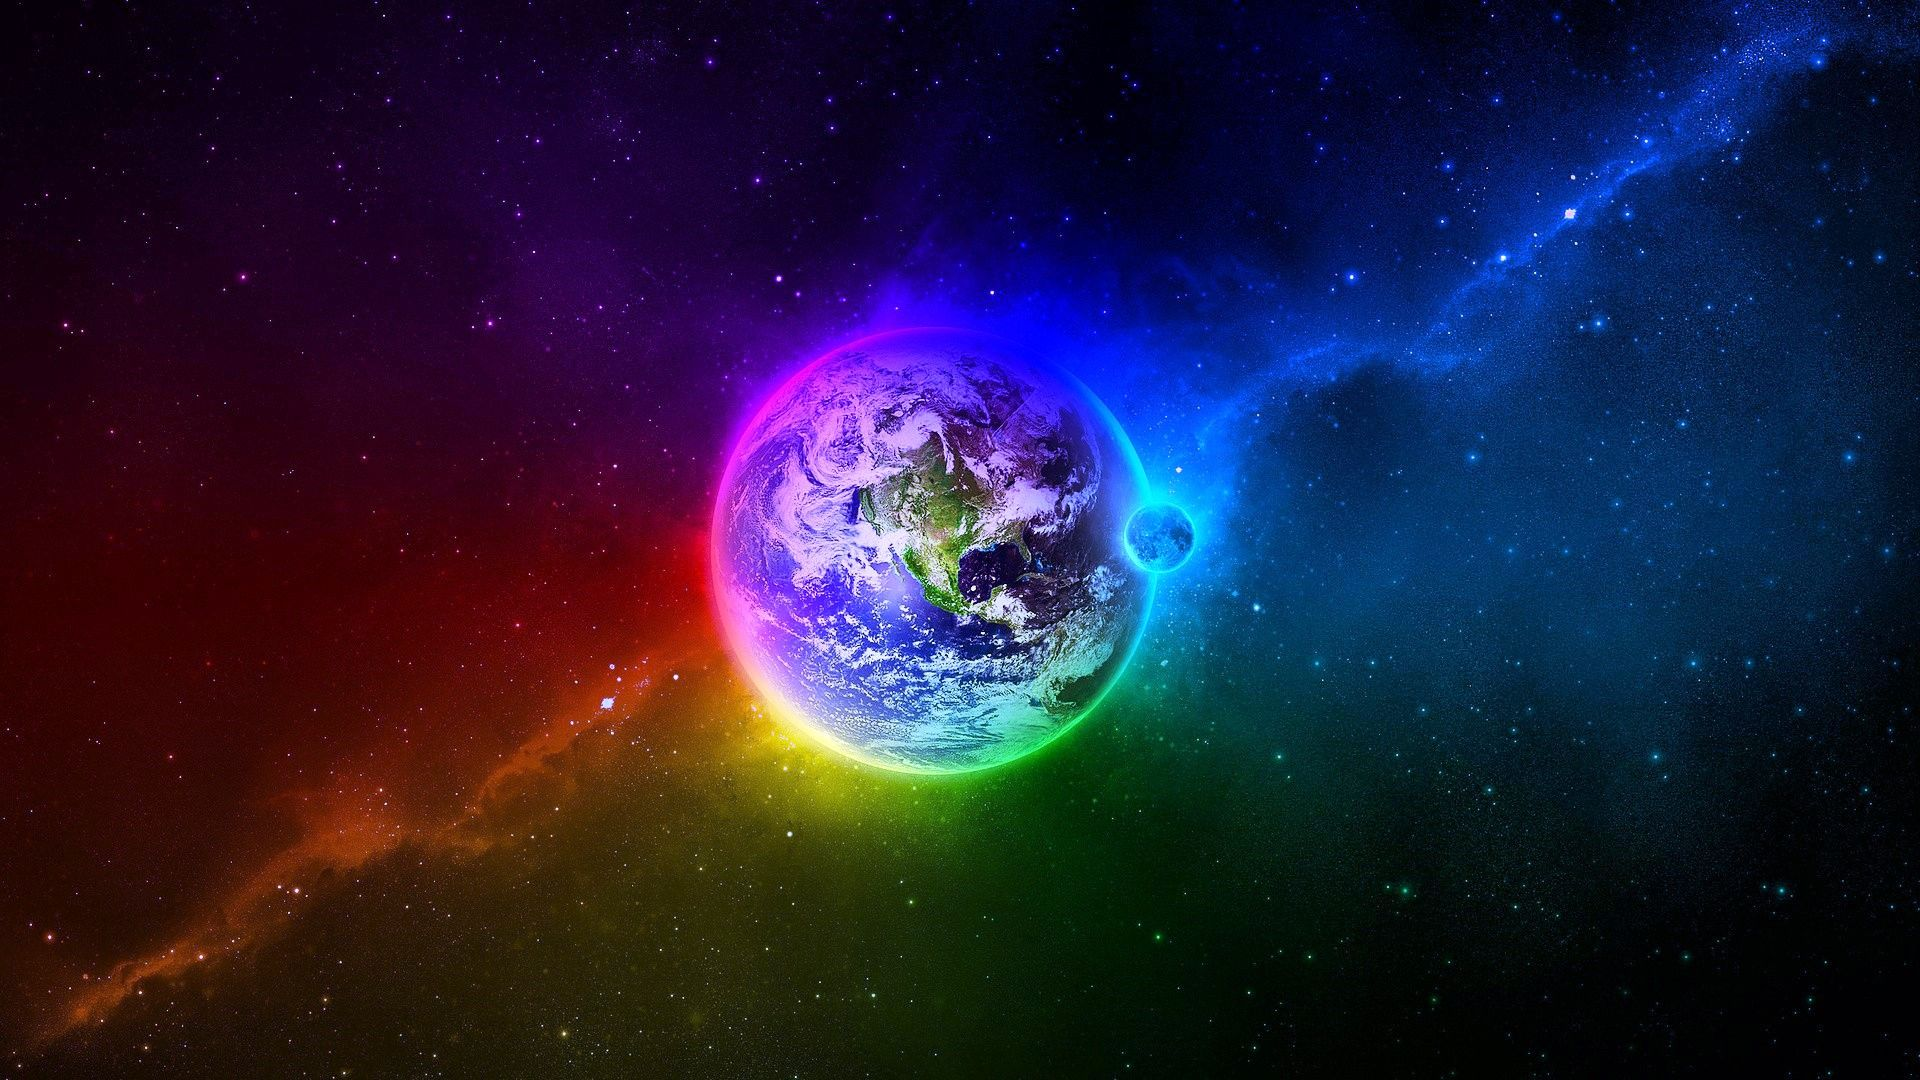 earth space wallpaper high quality resolution   Demons   Pinterest     earth space wallpaper high quality resolution